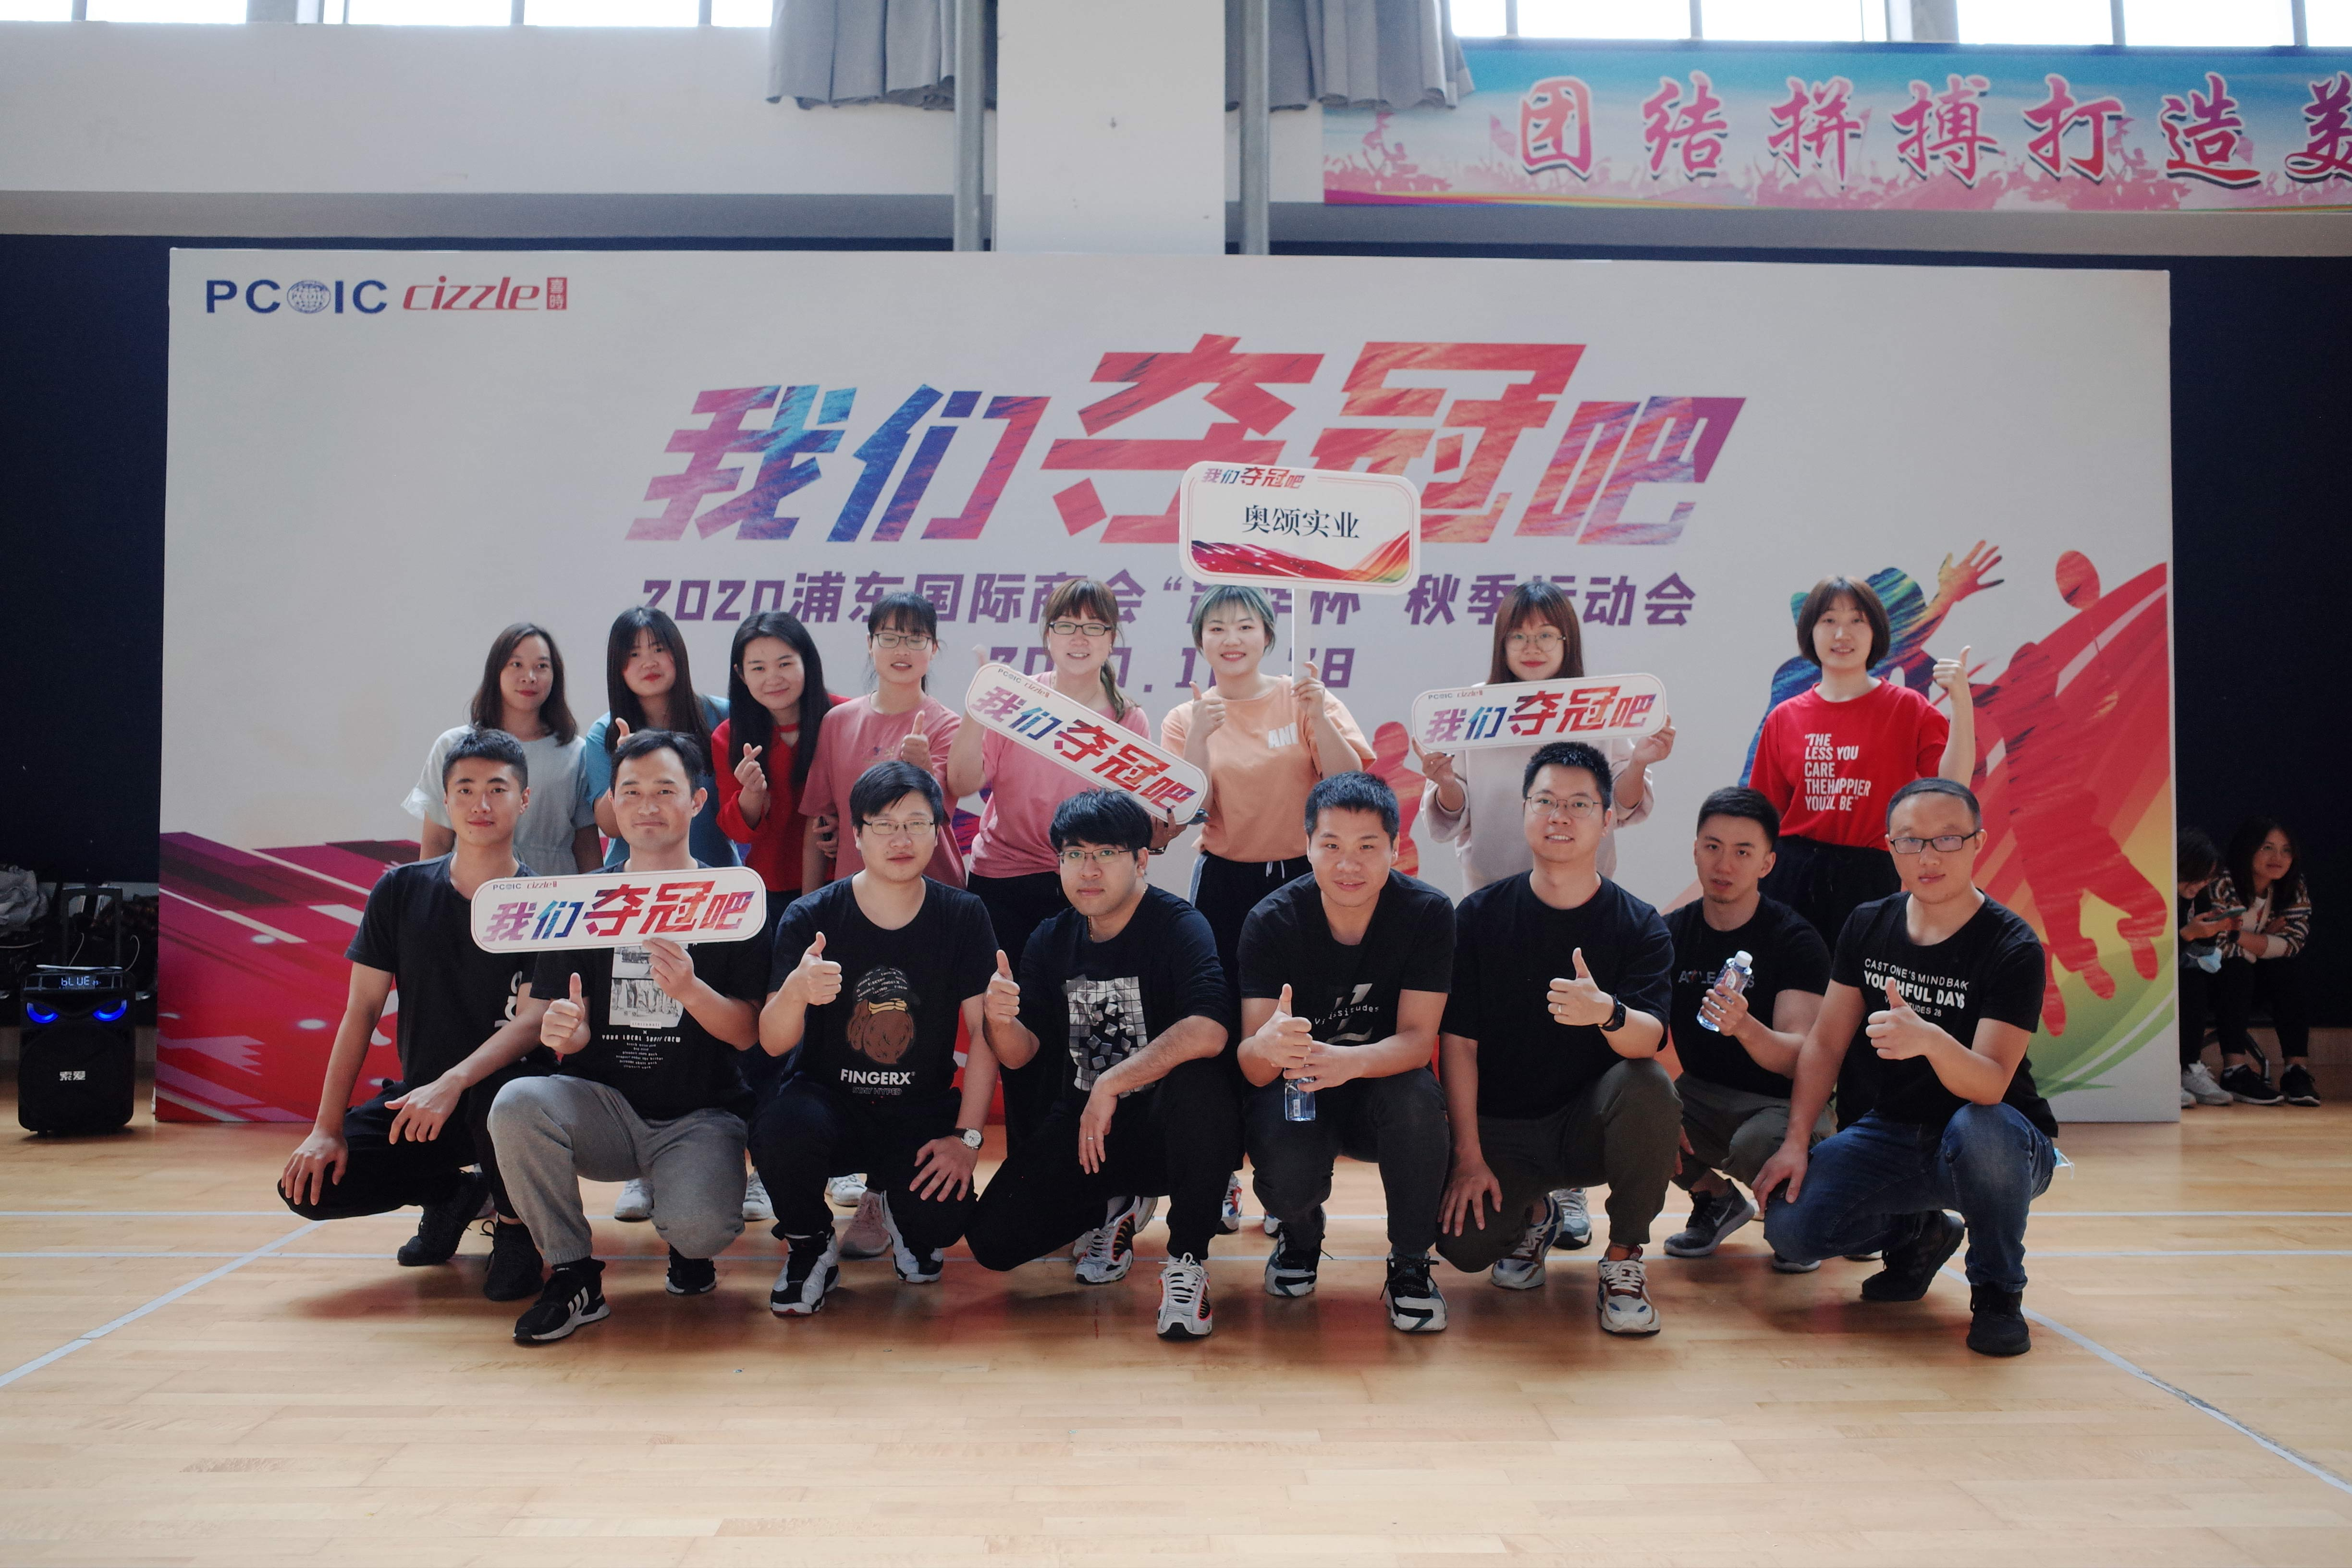 On October 28, 2020, our company participated in the autumn sports meeting.